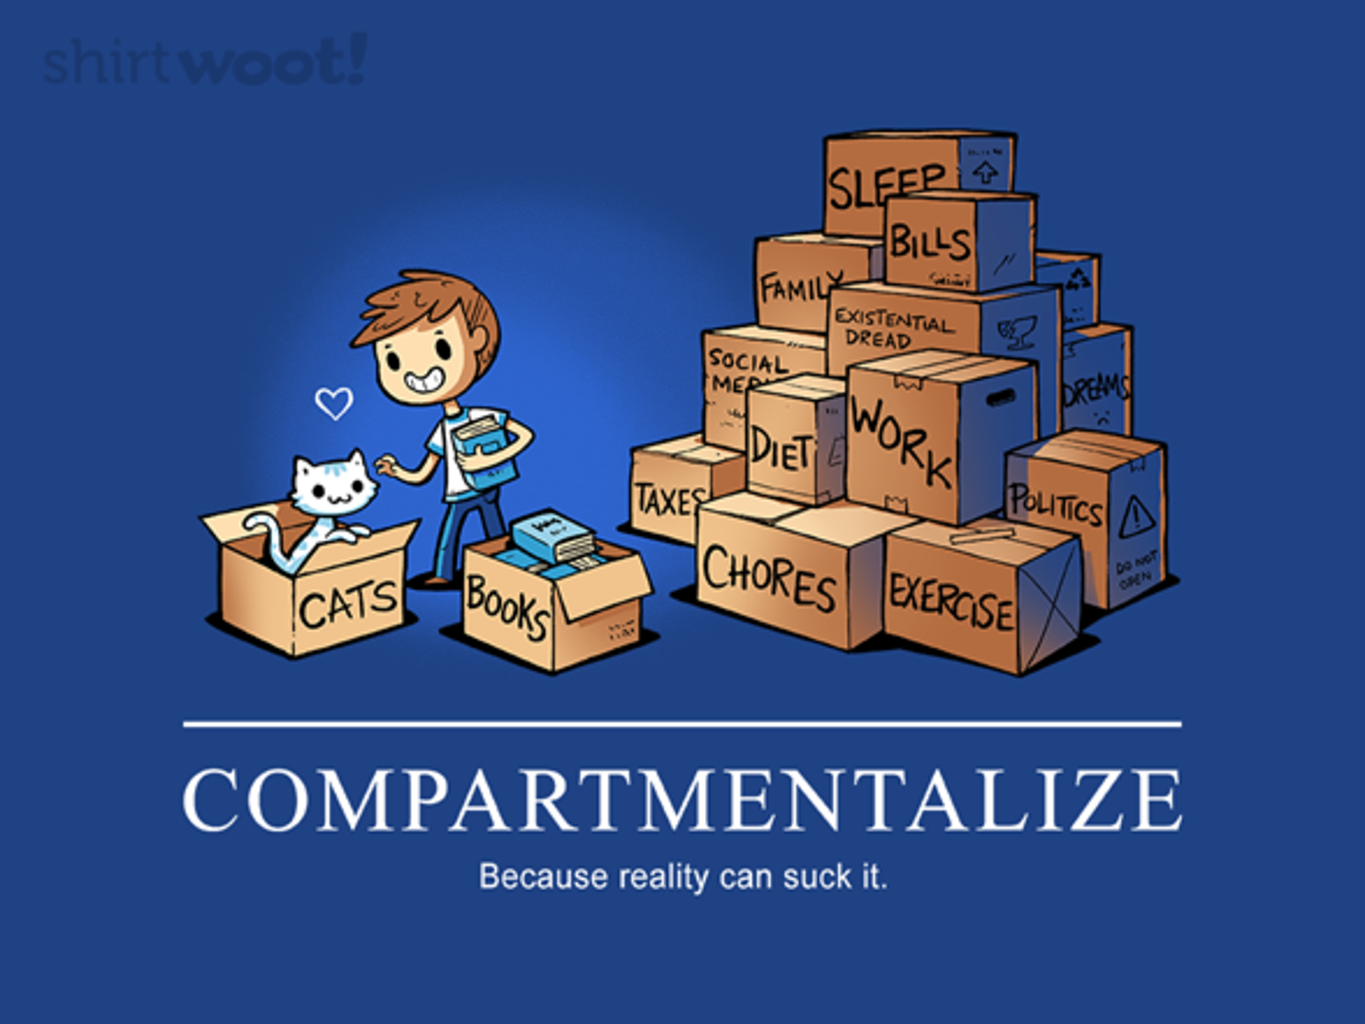 Woot!: Compartmentalizing